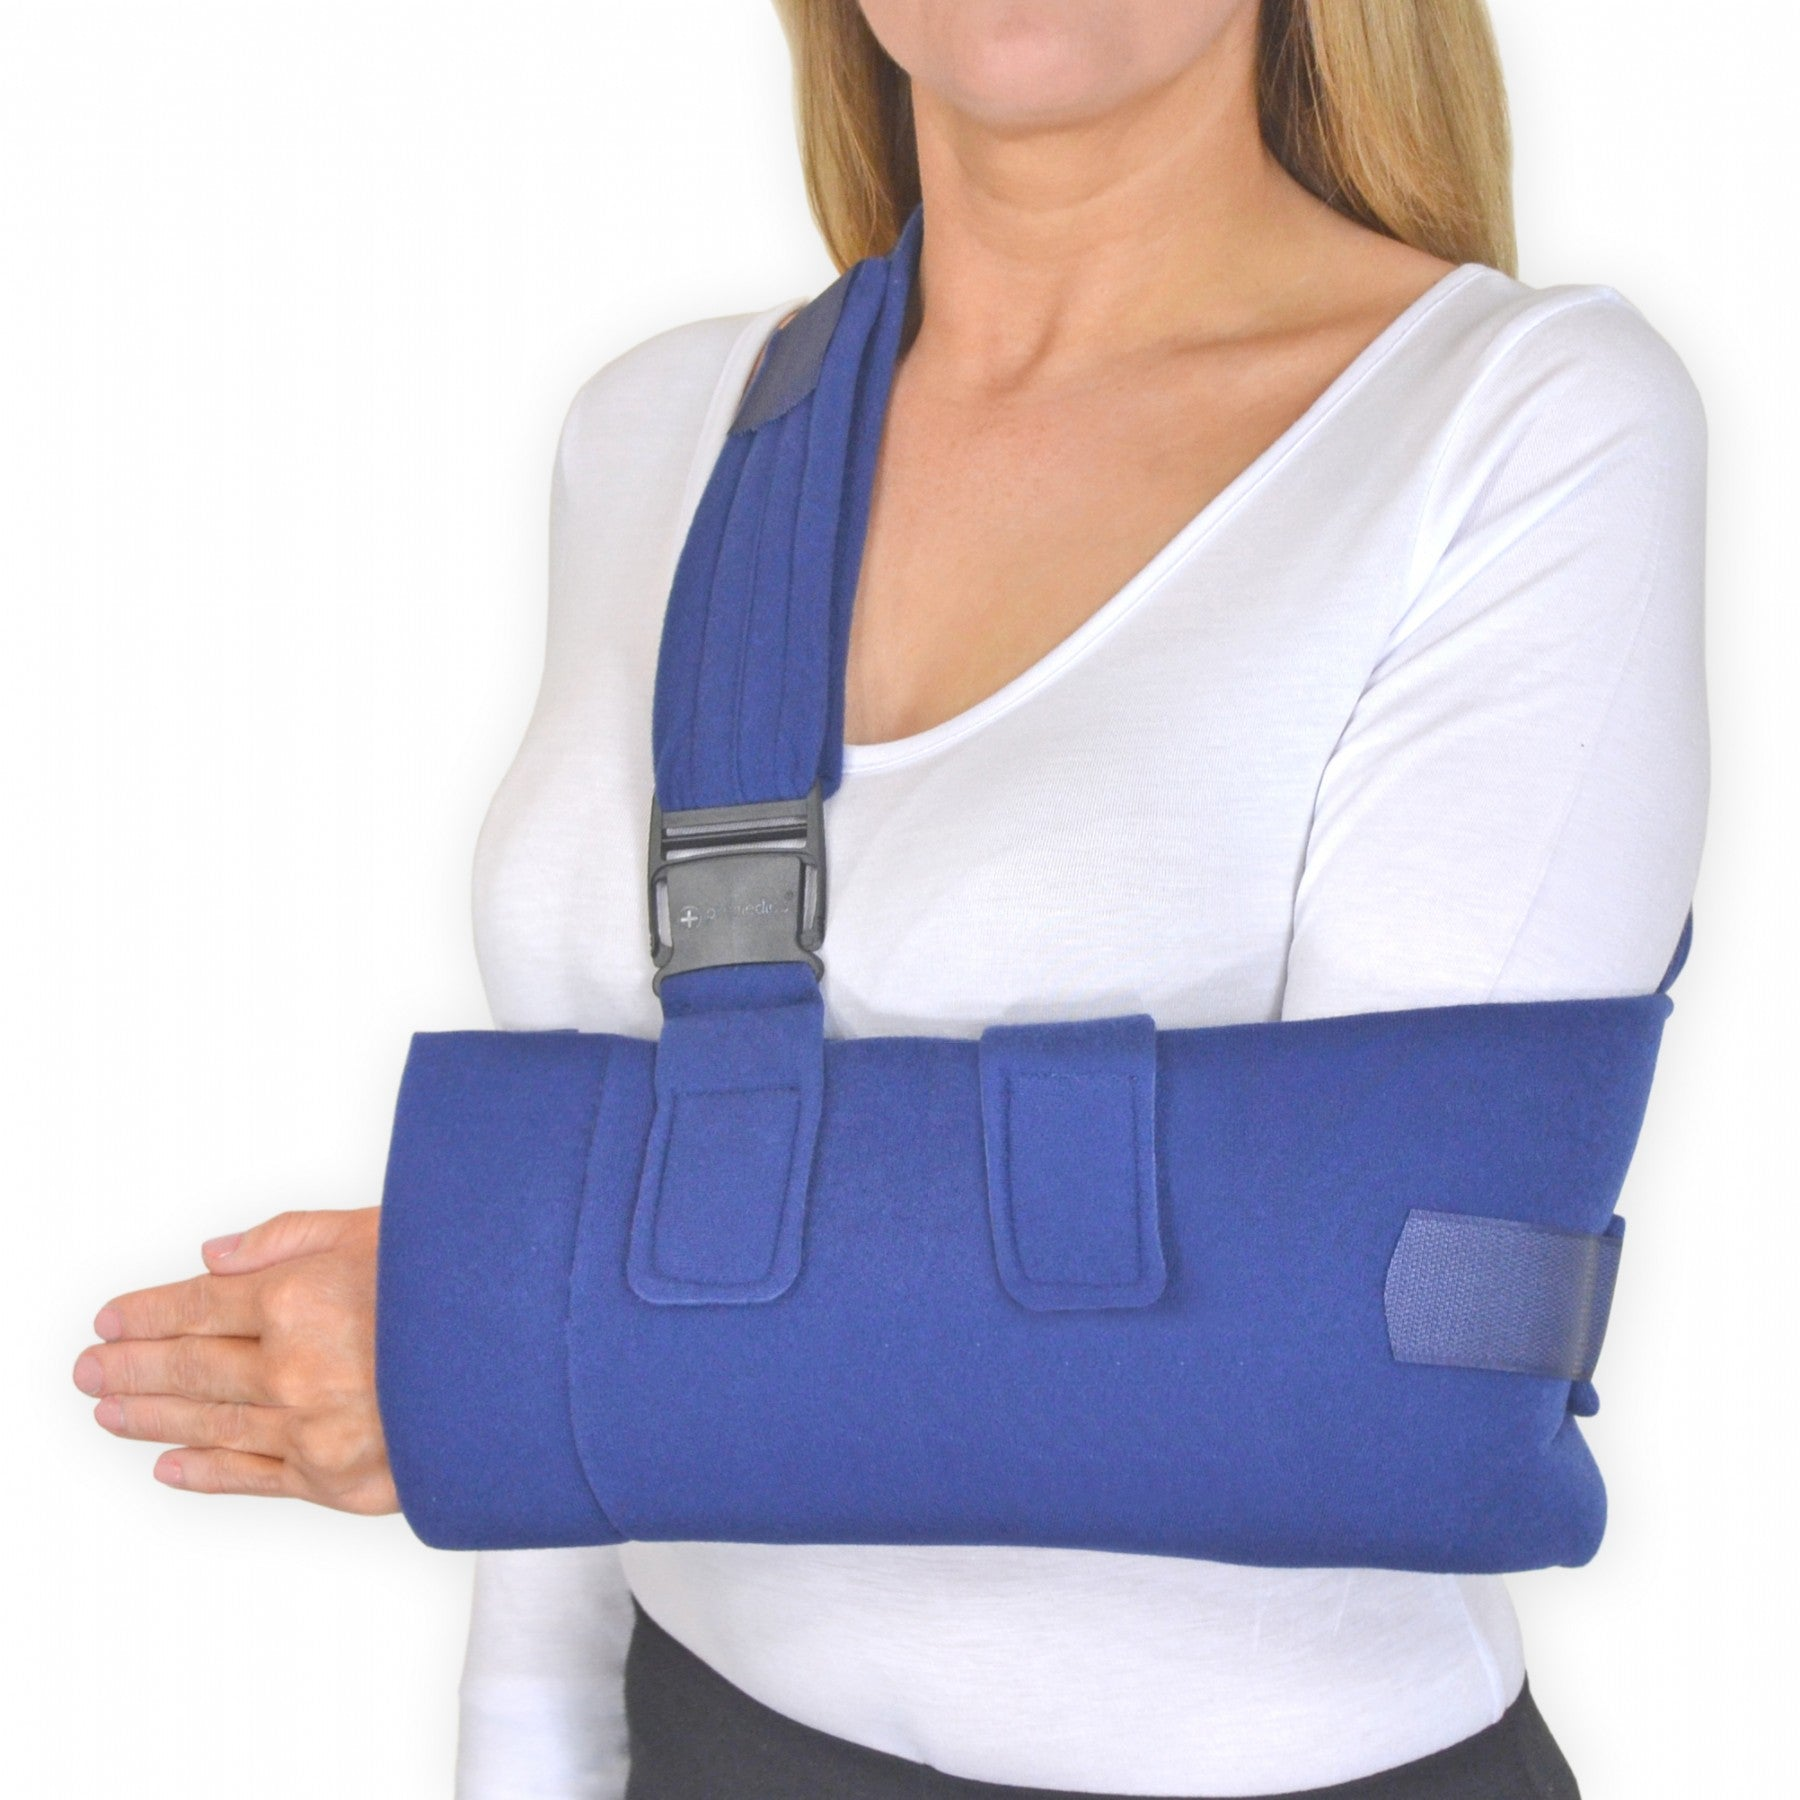 Promedics Lancaster Shoulder Sling One Size - Blue